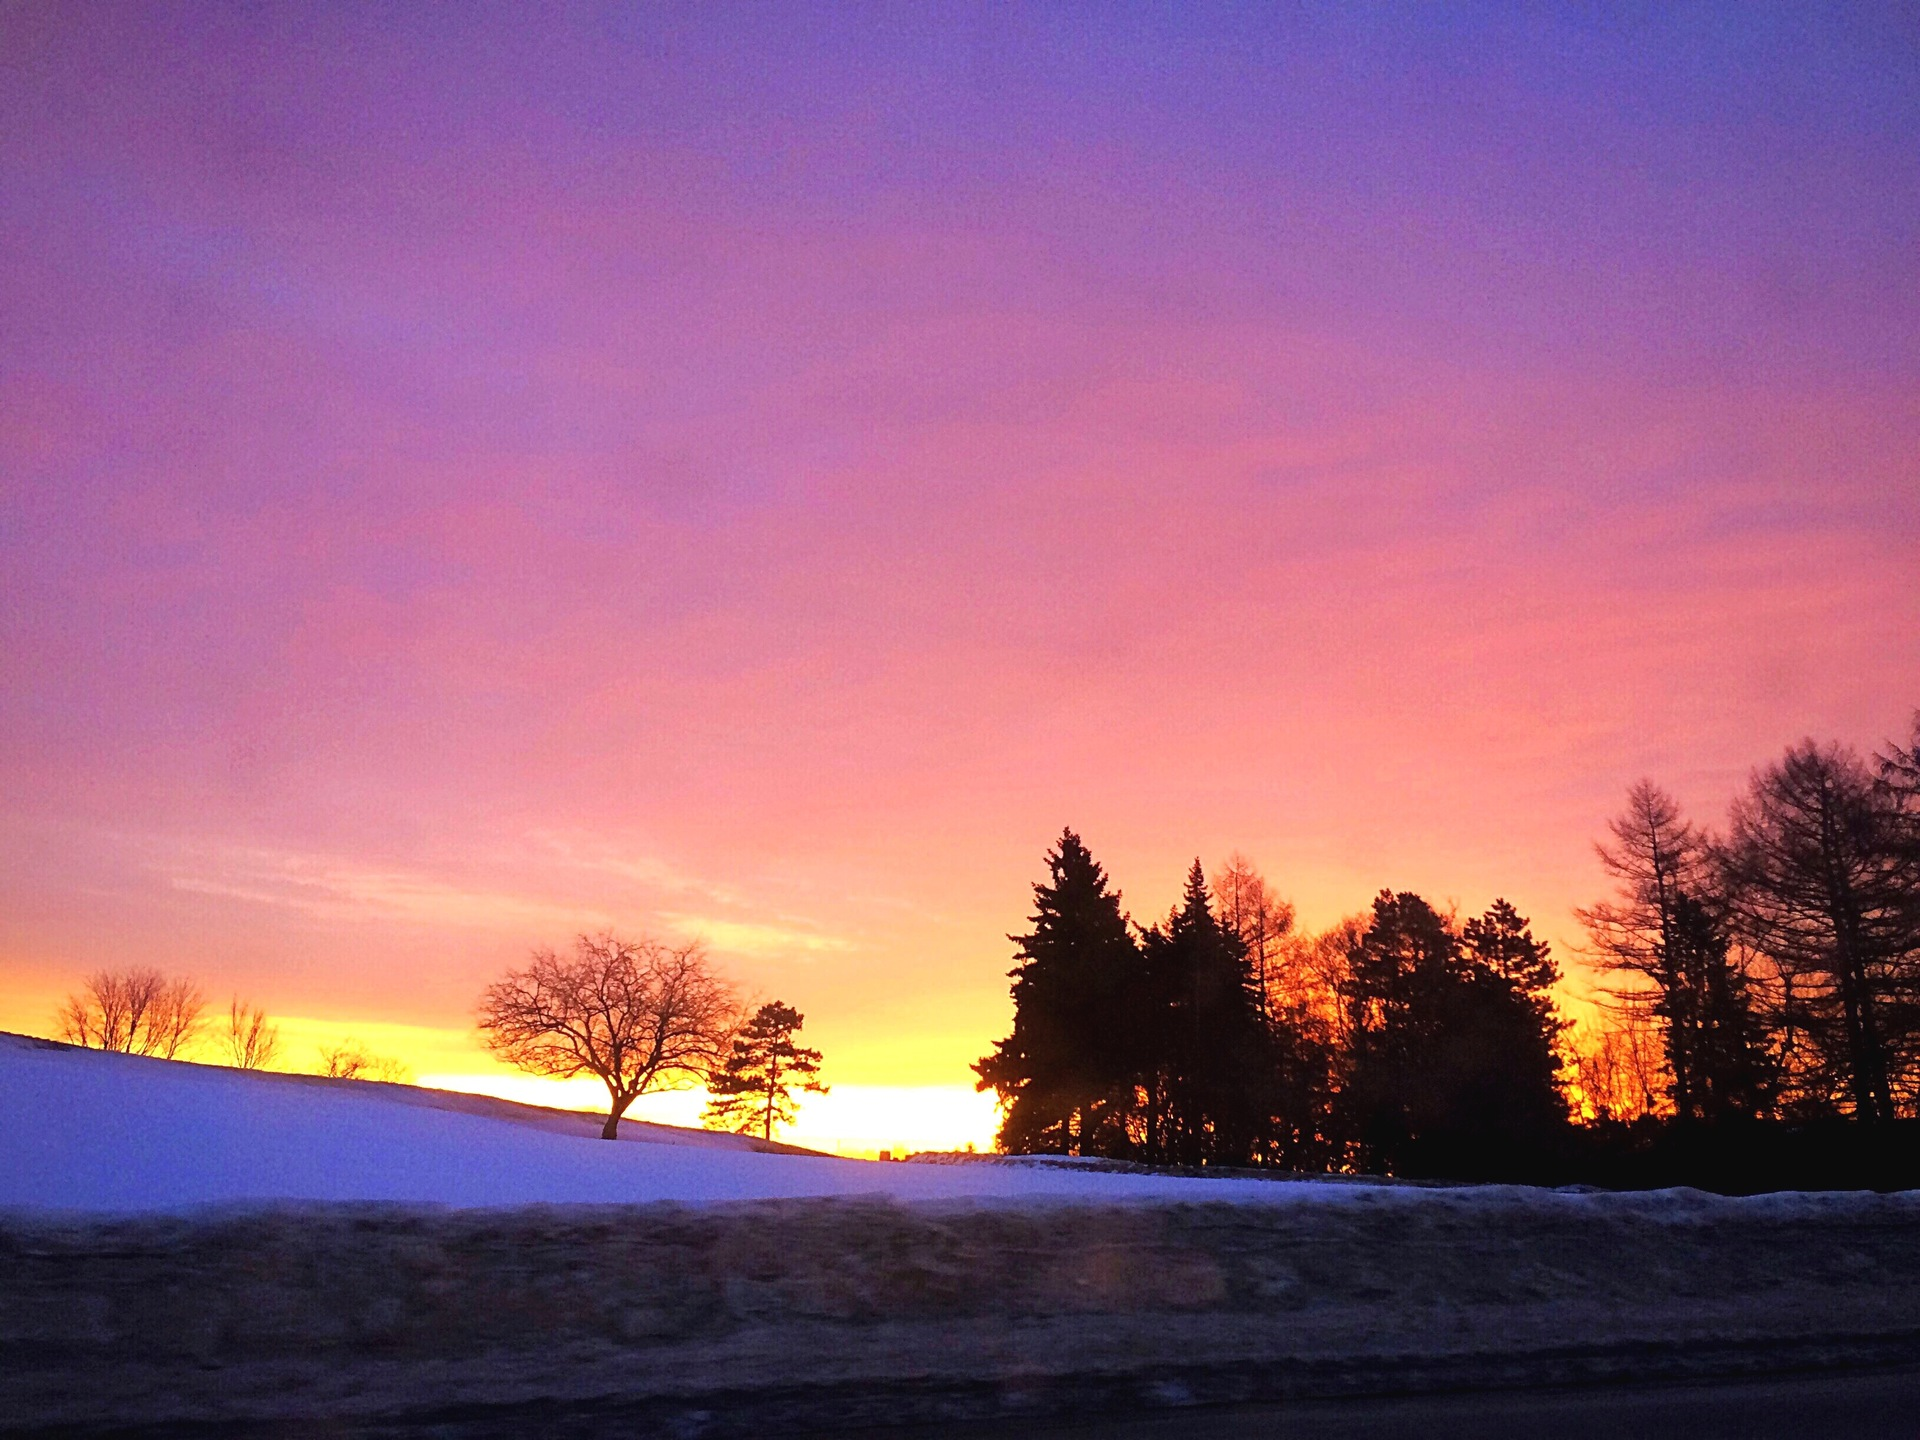 Winter morning sky and landscape